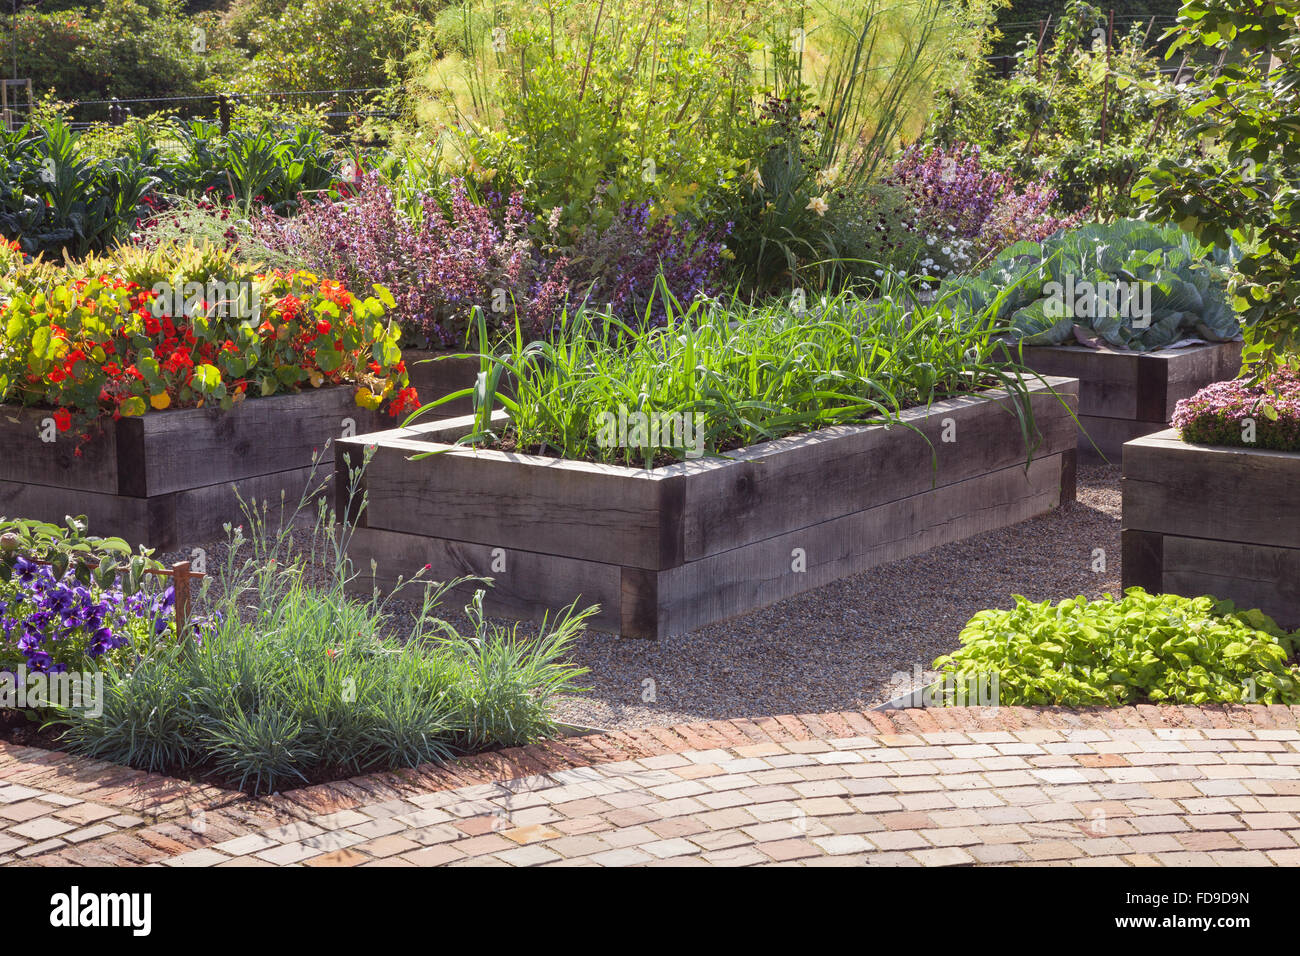 English Kitchen Garden Raised Beds Made Of Quercus Robur English Oak The Kitchen